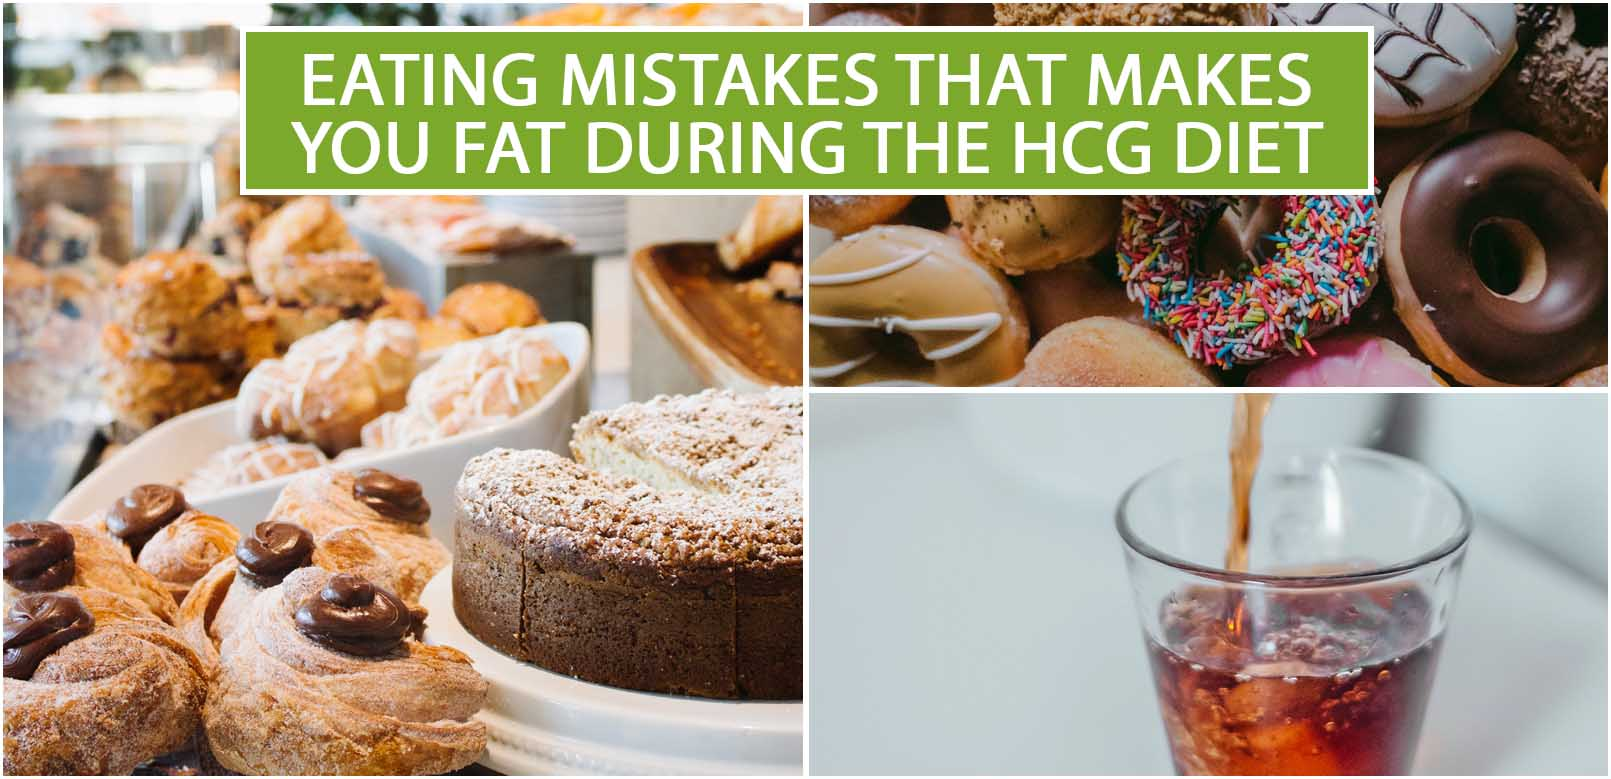 EATING MISTAKES THAT MAKES YOU FAT DURING THE HCG DIET